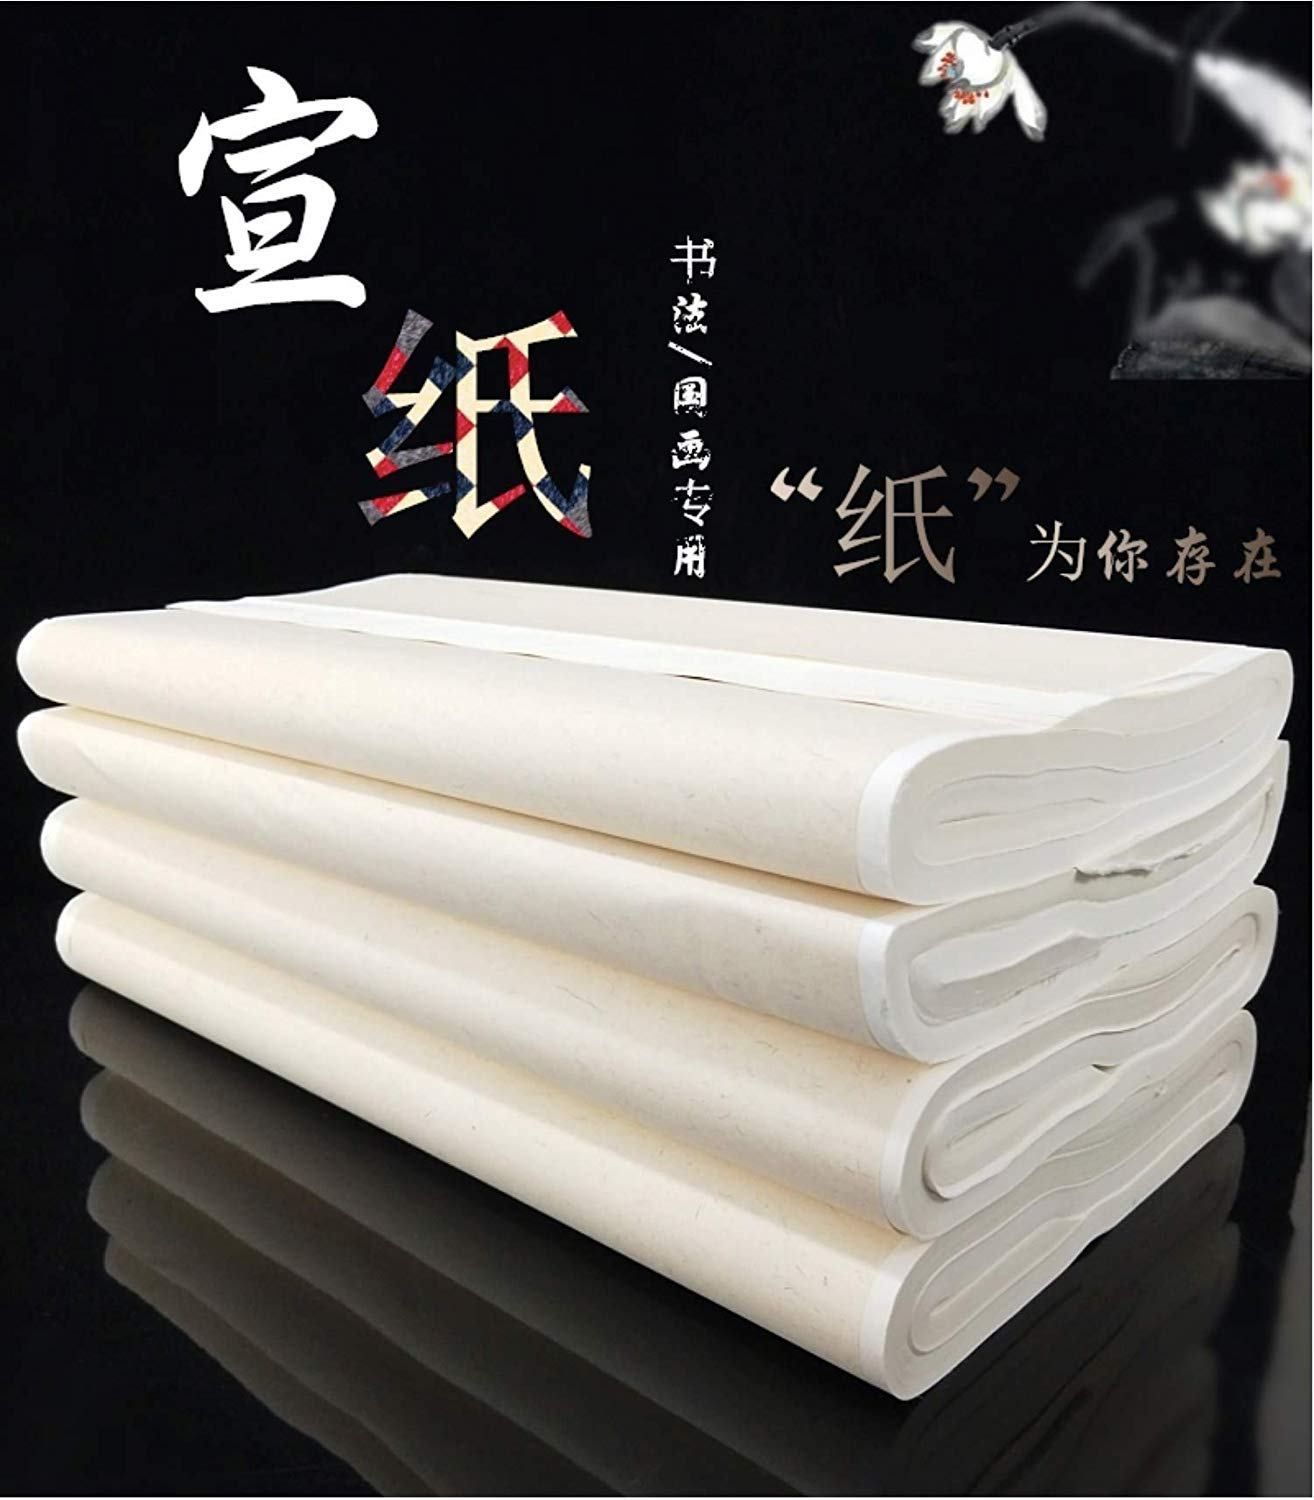 Megrez Large Size Chinese Watercolor Practice Chinese Japanese Calligraphy Writing Sumi Drawing Xuan Rice Paper Thickening without Grids 100 Sheets/Set - 69 x 138 cm (27.16 x 54.33 Inch), Sheng Xuan by MEGREZ